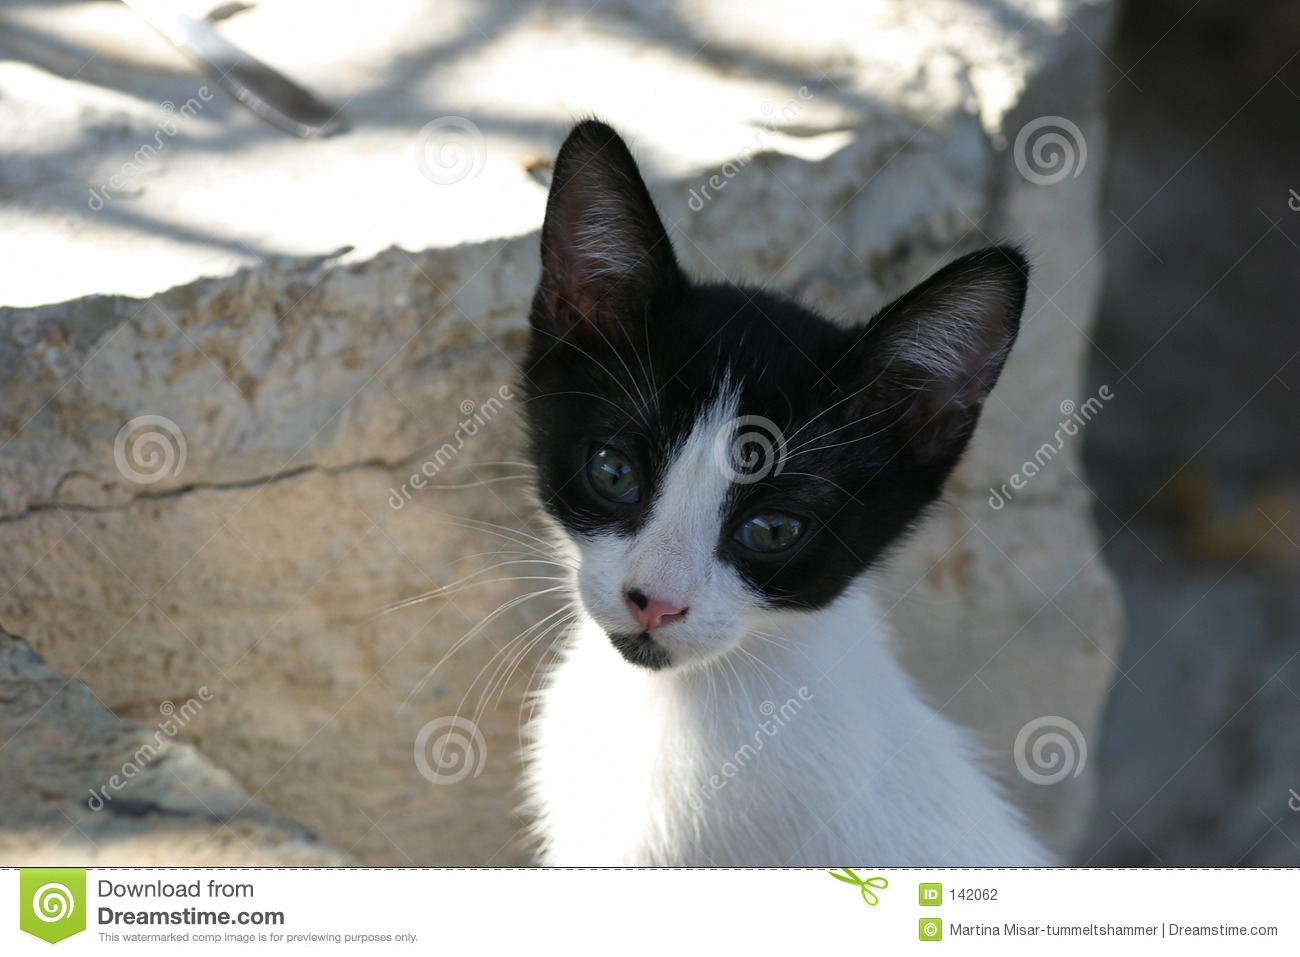 Crete / Baby cat begging for food